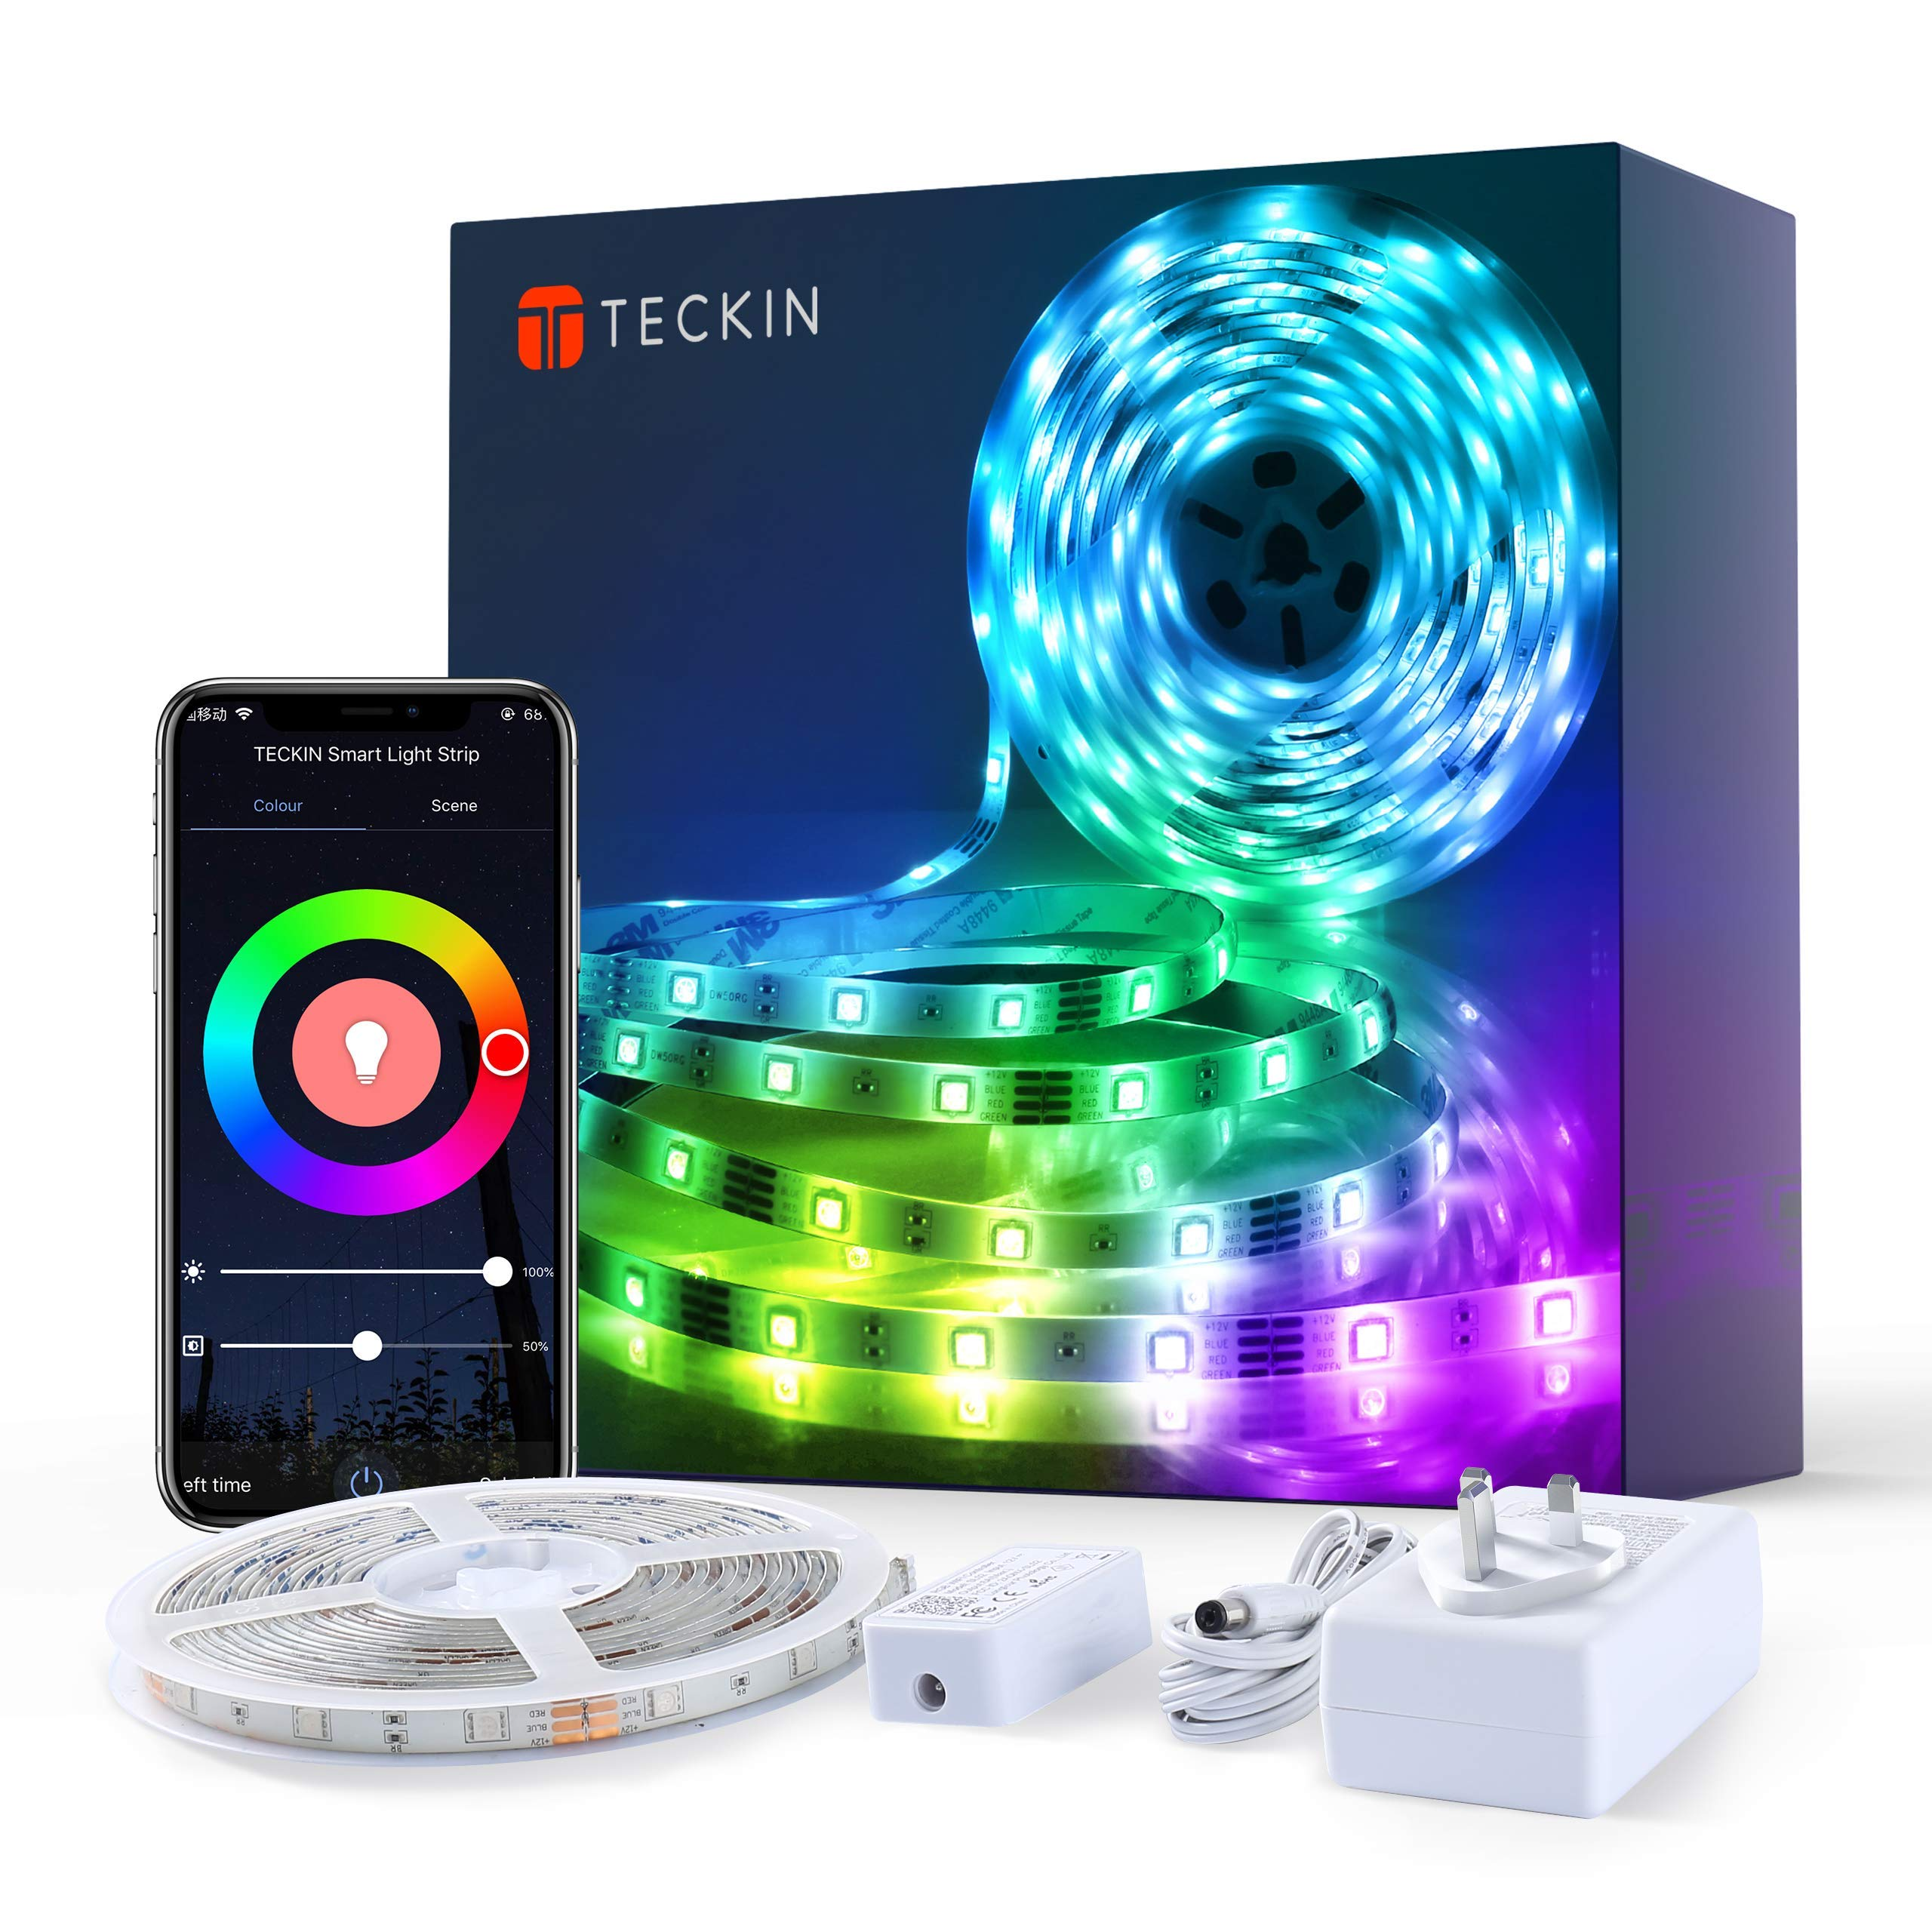 Teckin LED Strip Lights 5m, Smart WiFi led Strip Waterproof APP Control RGB Colour Changing Music Sync Strips Lights for Home Kitchen Bedroom TV Party, Works with Alexa, Google Assistant [Energy Class A+++]